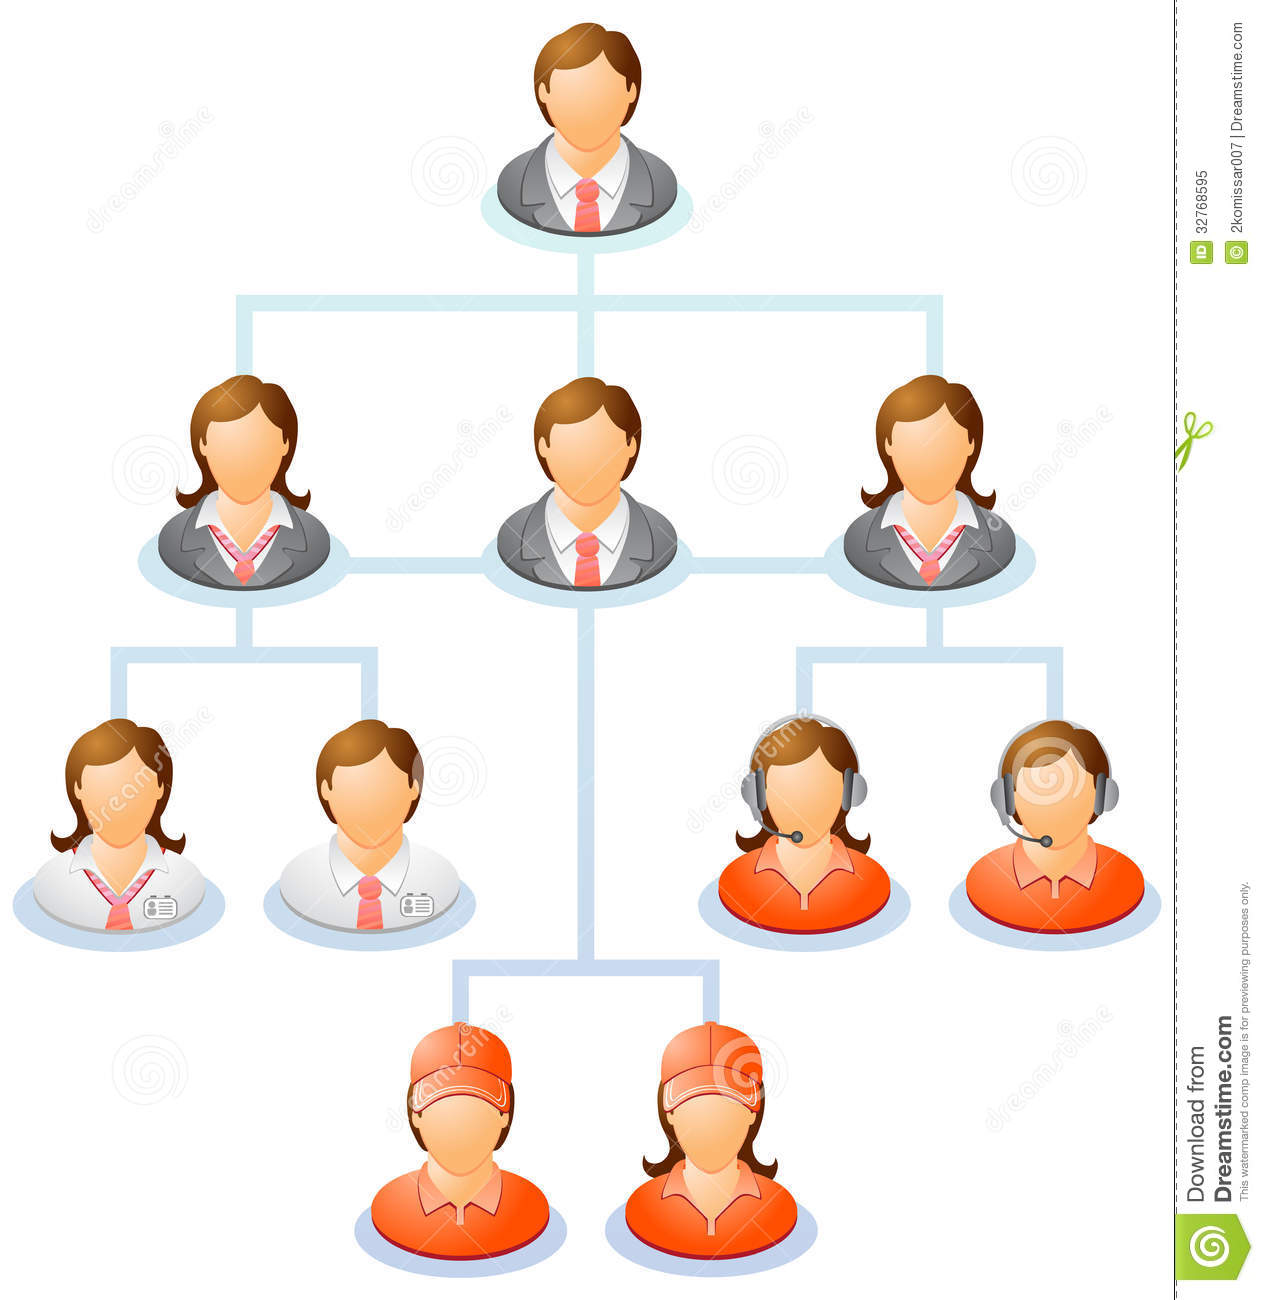 Organization Chart Stock Vector. Image Of Development